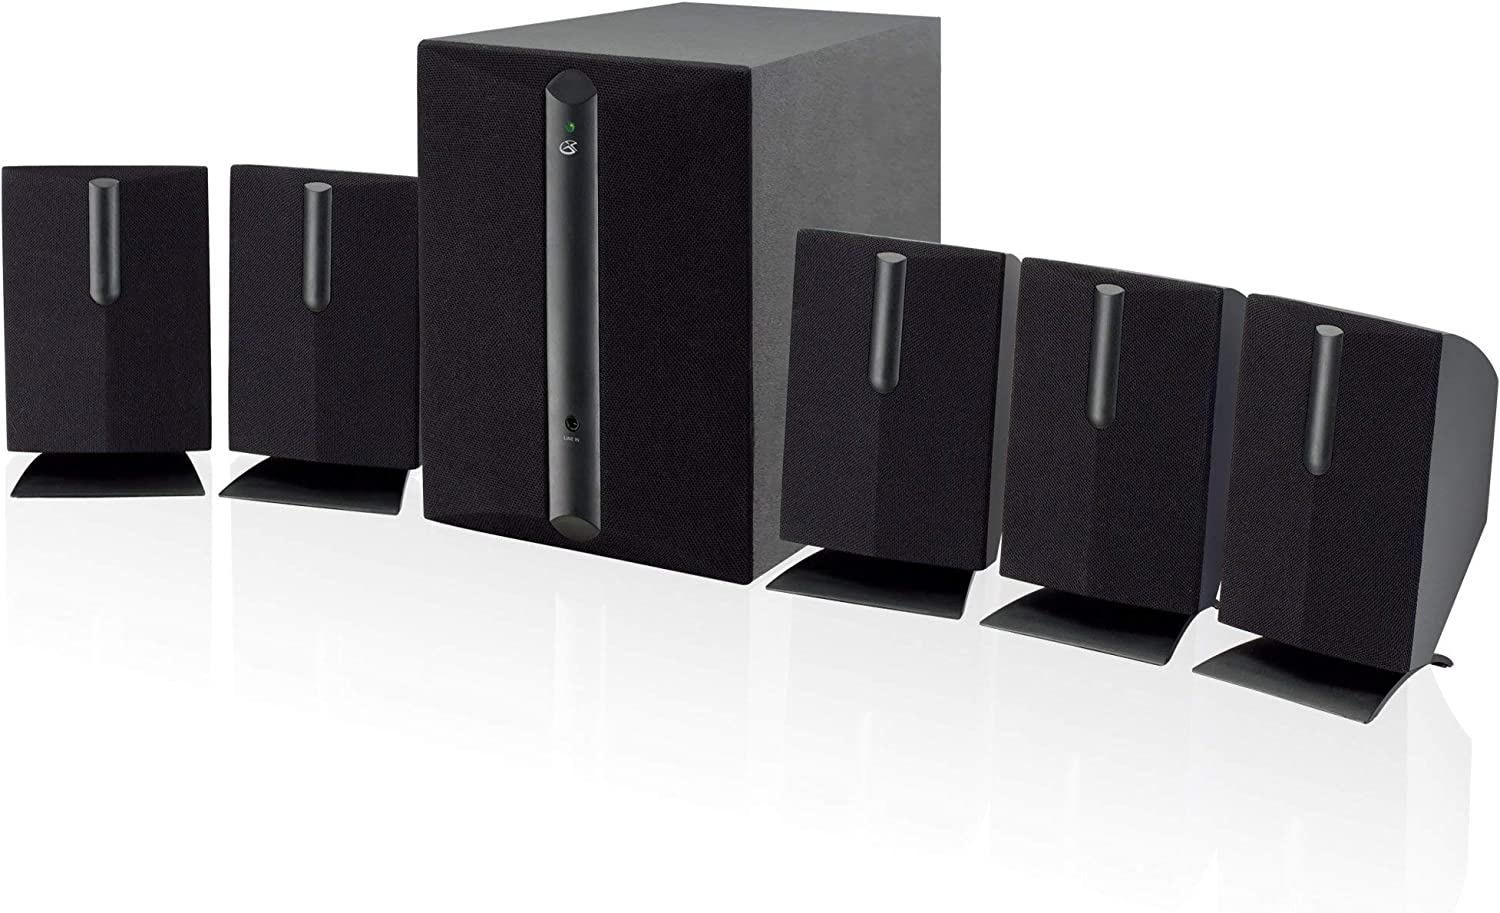 GPX HT050B 5.1 Channel Home Theater Speaker System (Black) (Renewed)